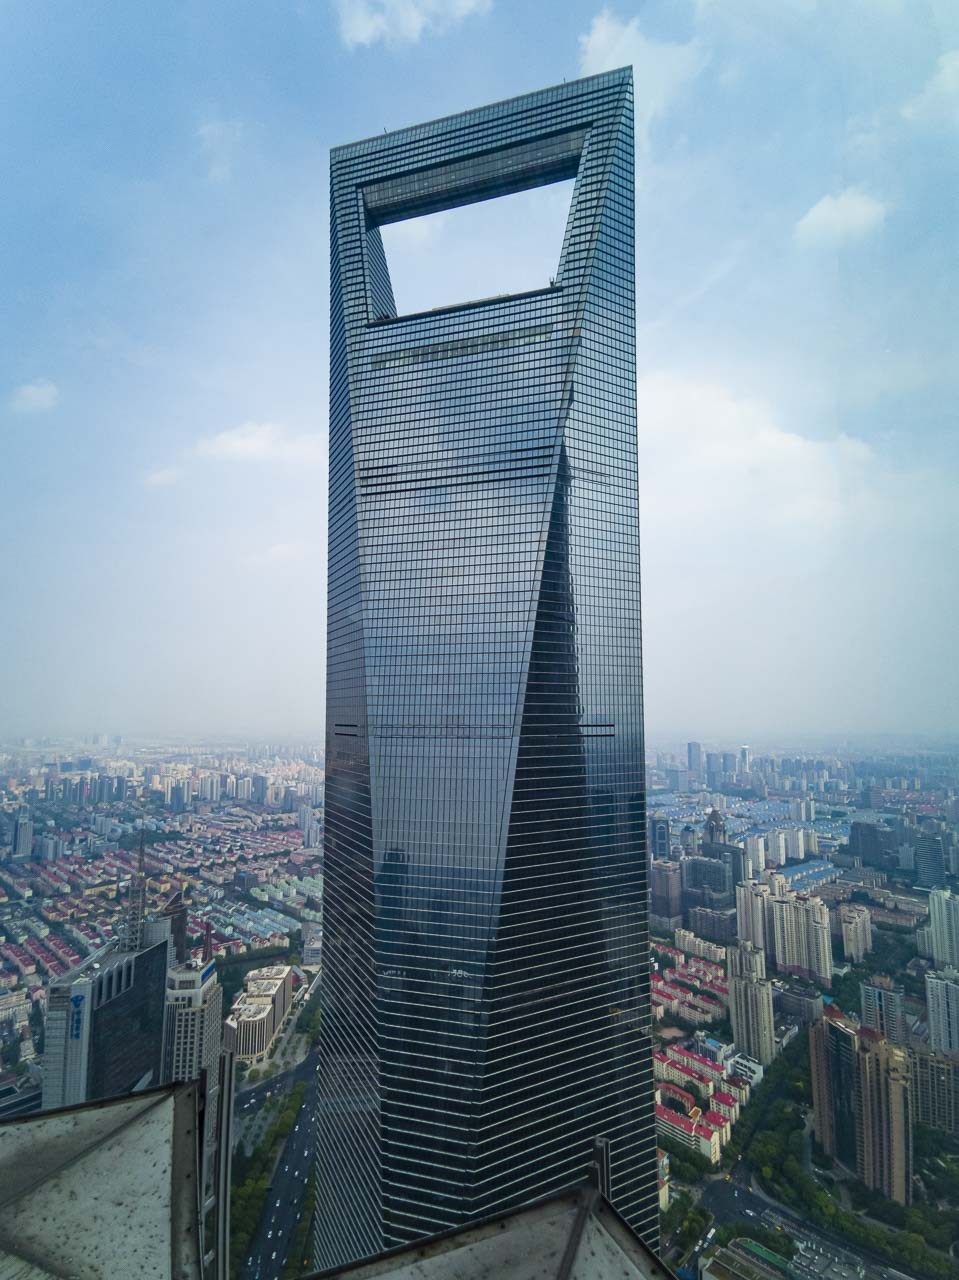 shanghai what to do | observation deck view of World financial Center